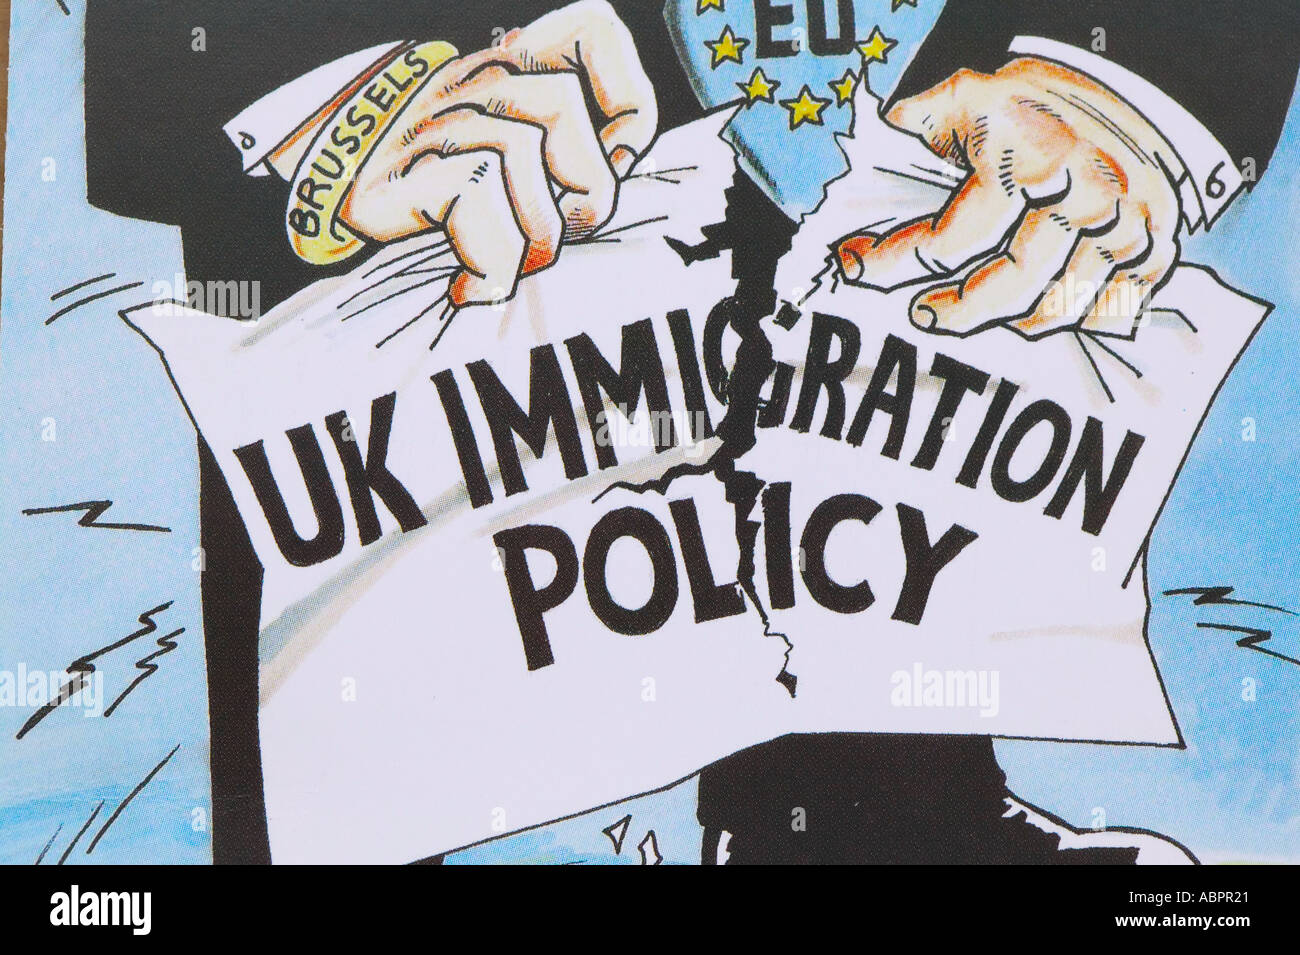 UK Independance Party poster publicising immigration policy - Stock Image